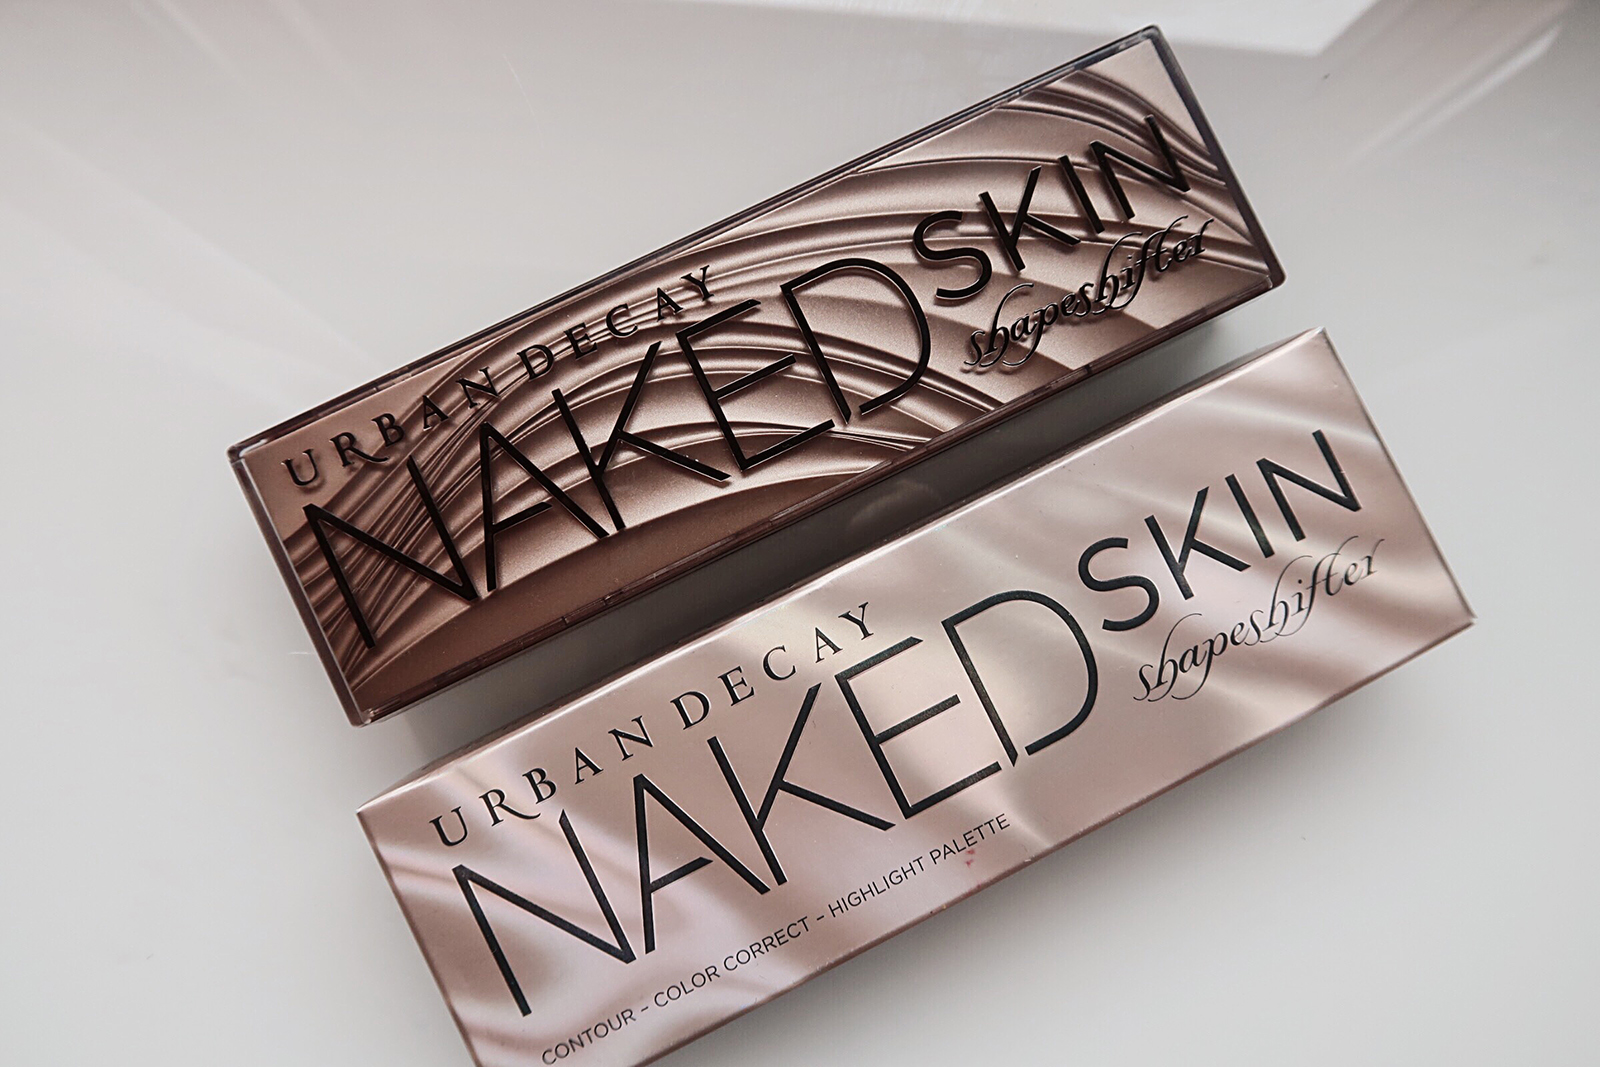 NAKED Shapeshifter Skin palette by Urban Decay!